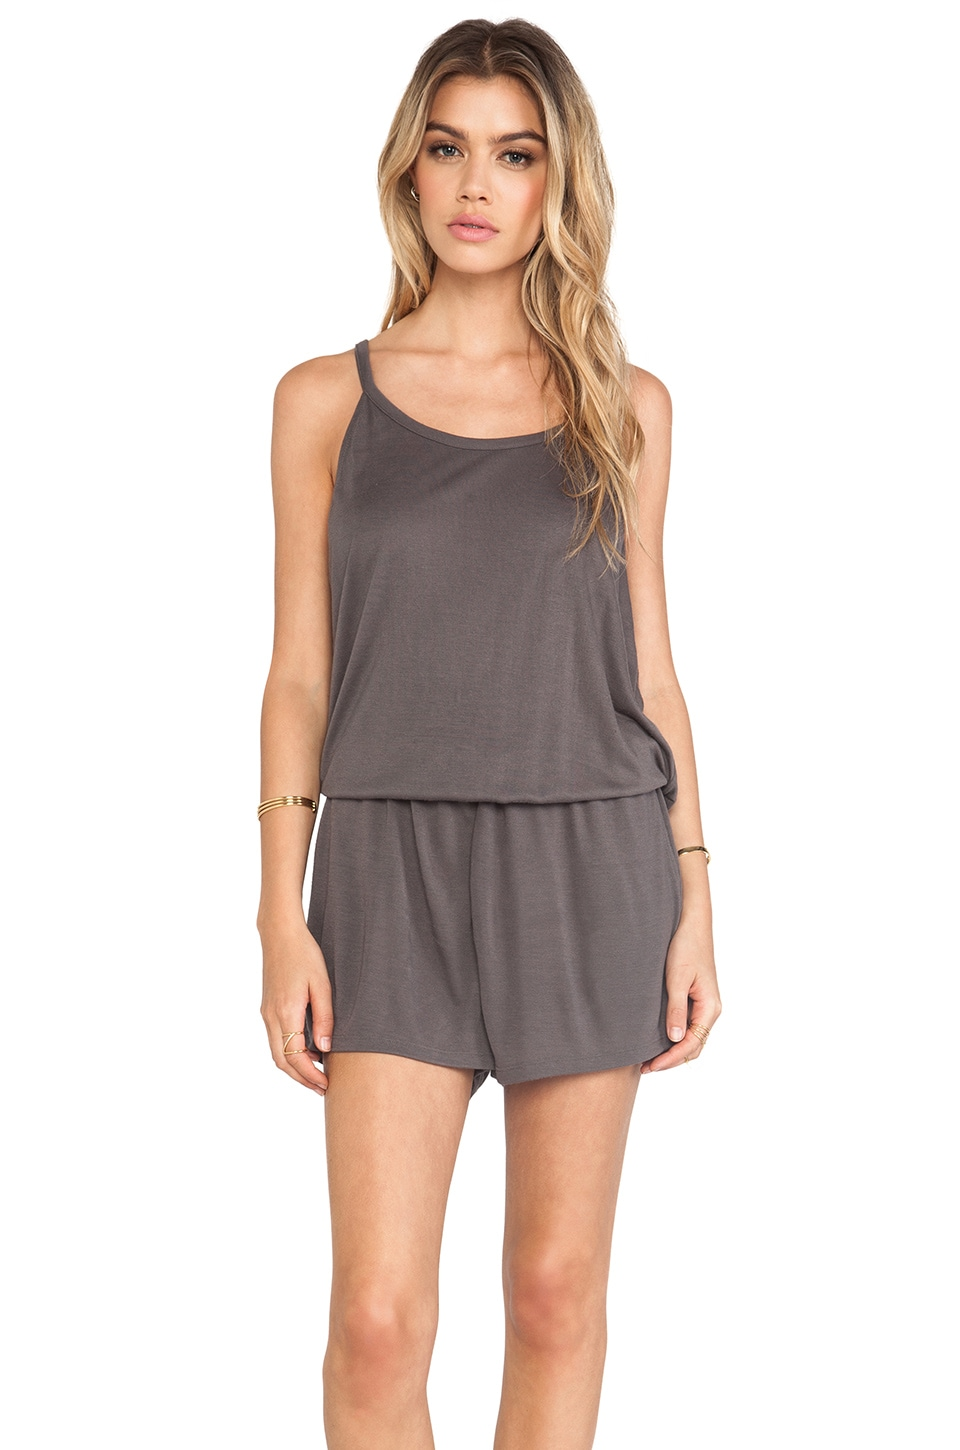 Soft Joie Jasina Romper in Shadow